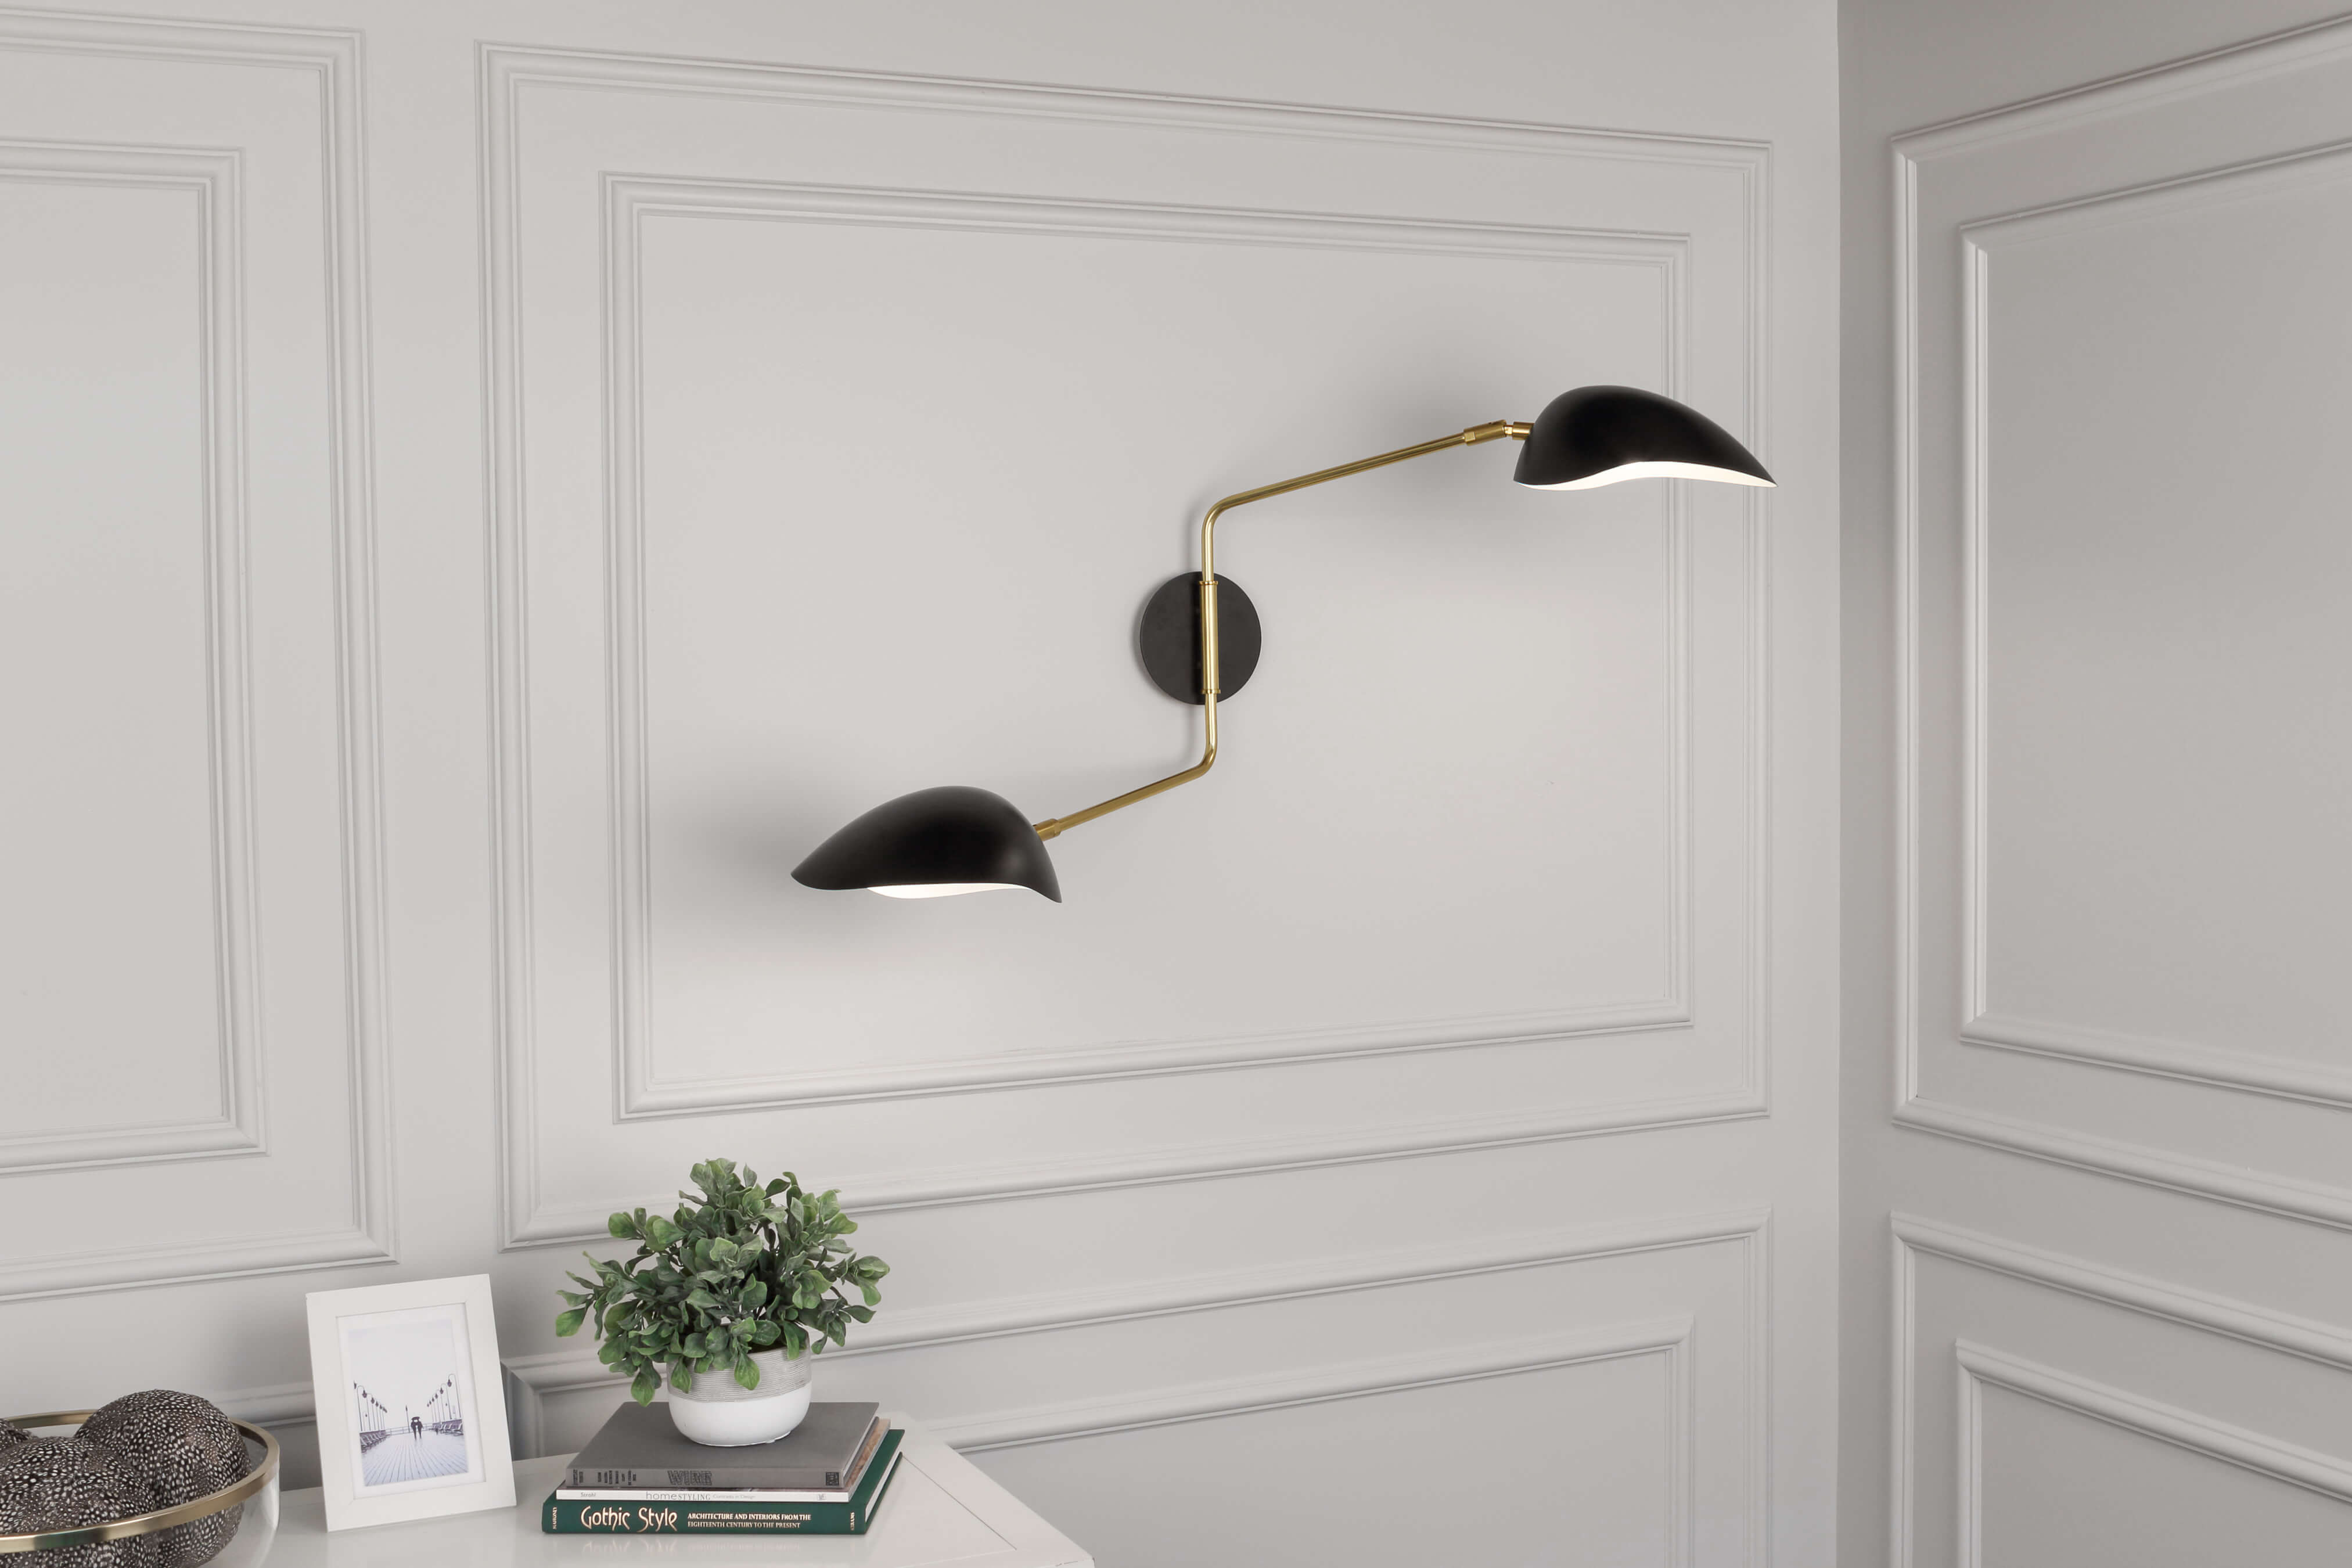 RICO ESPINET RACER WALL SCONCE by Robert Abbey